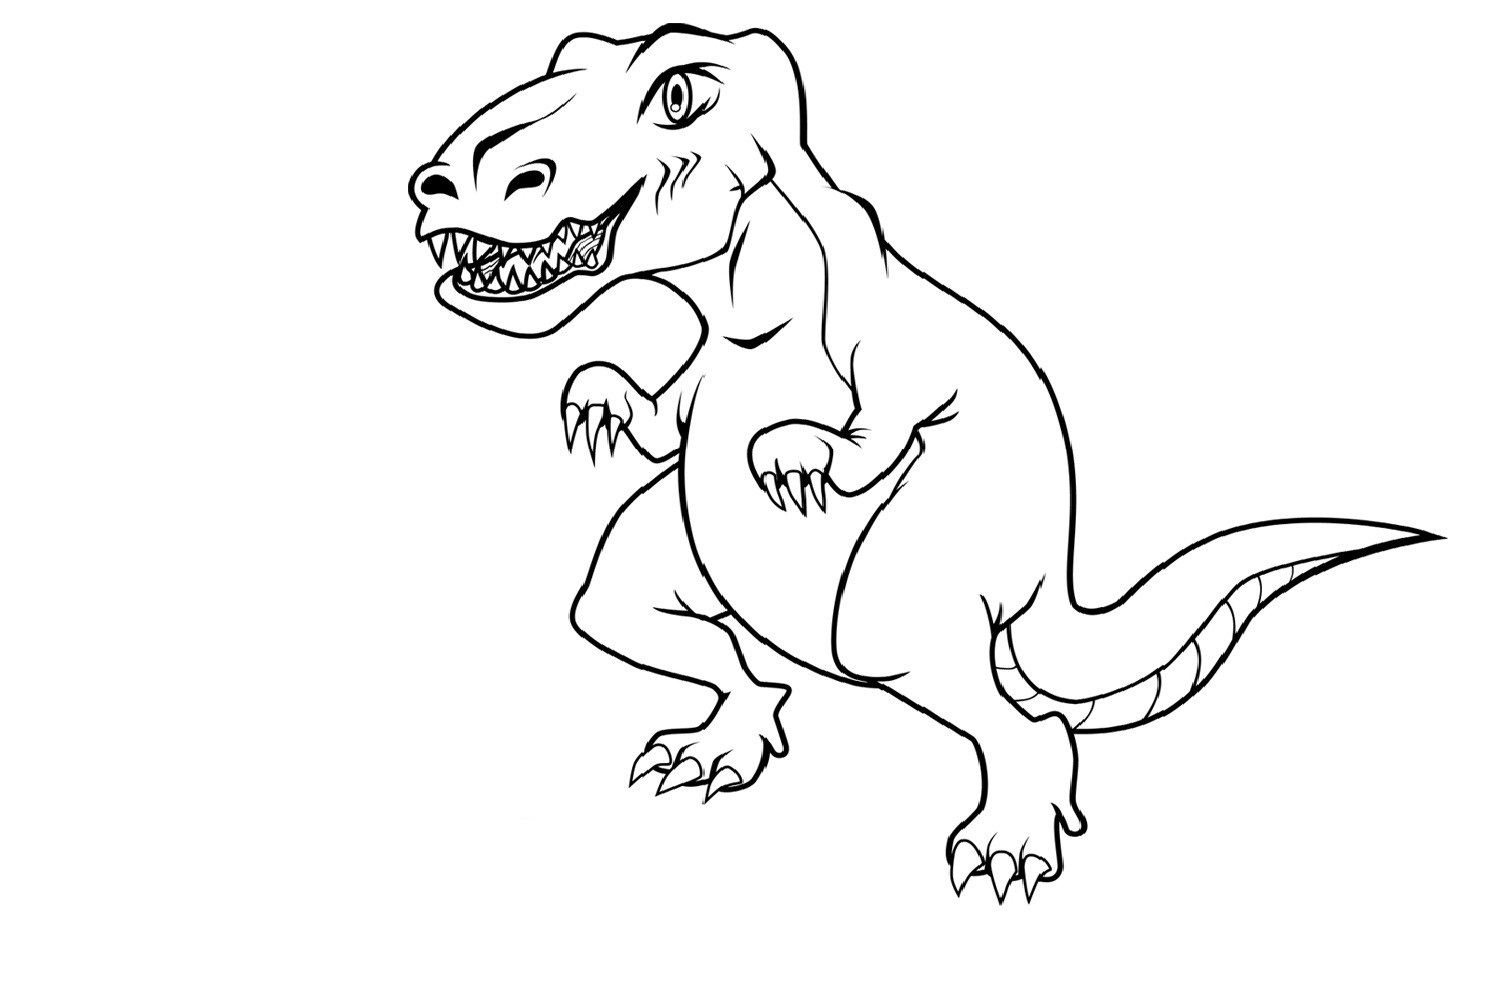 free printable dinosaur coloring pages - Free Printable Pictures To Colour